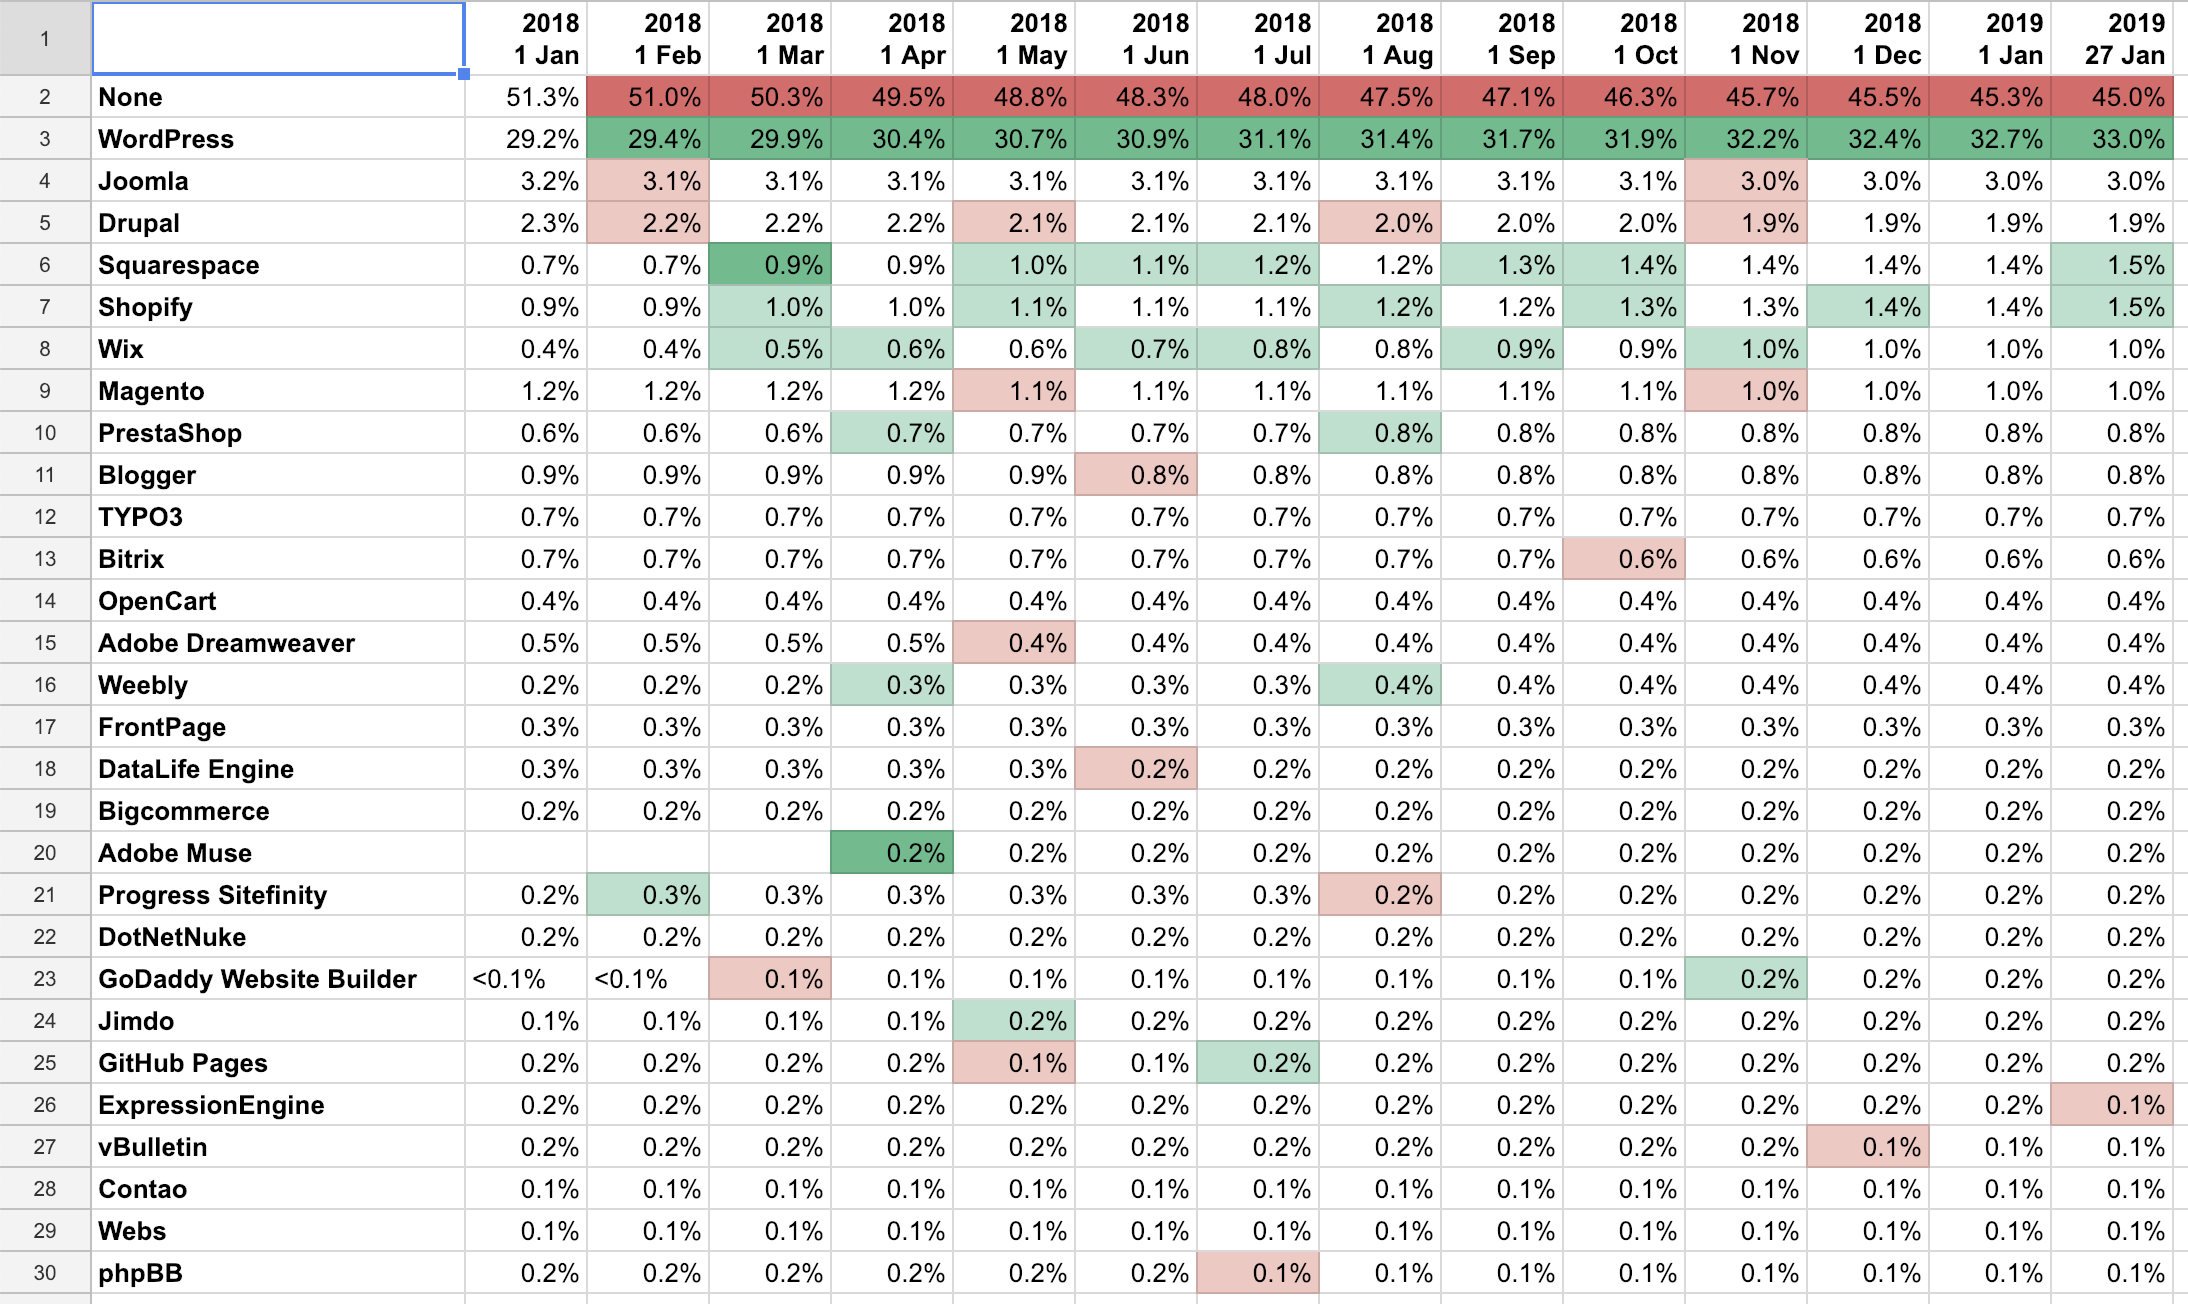 Market share table, the data in this screenshot can also be seen in the sheet that's linked in the article under Data.